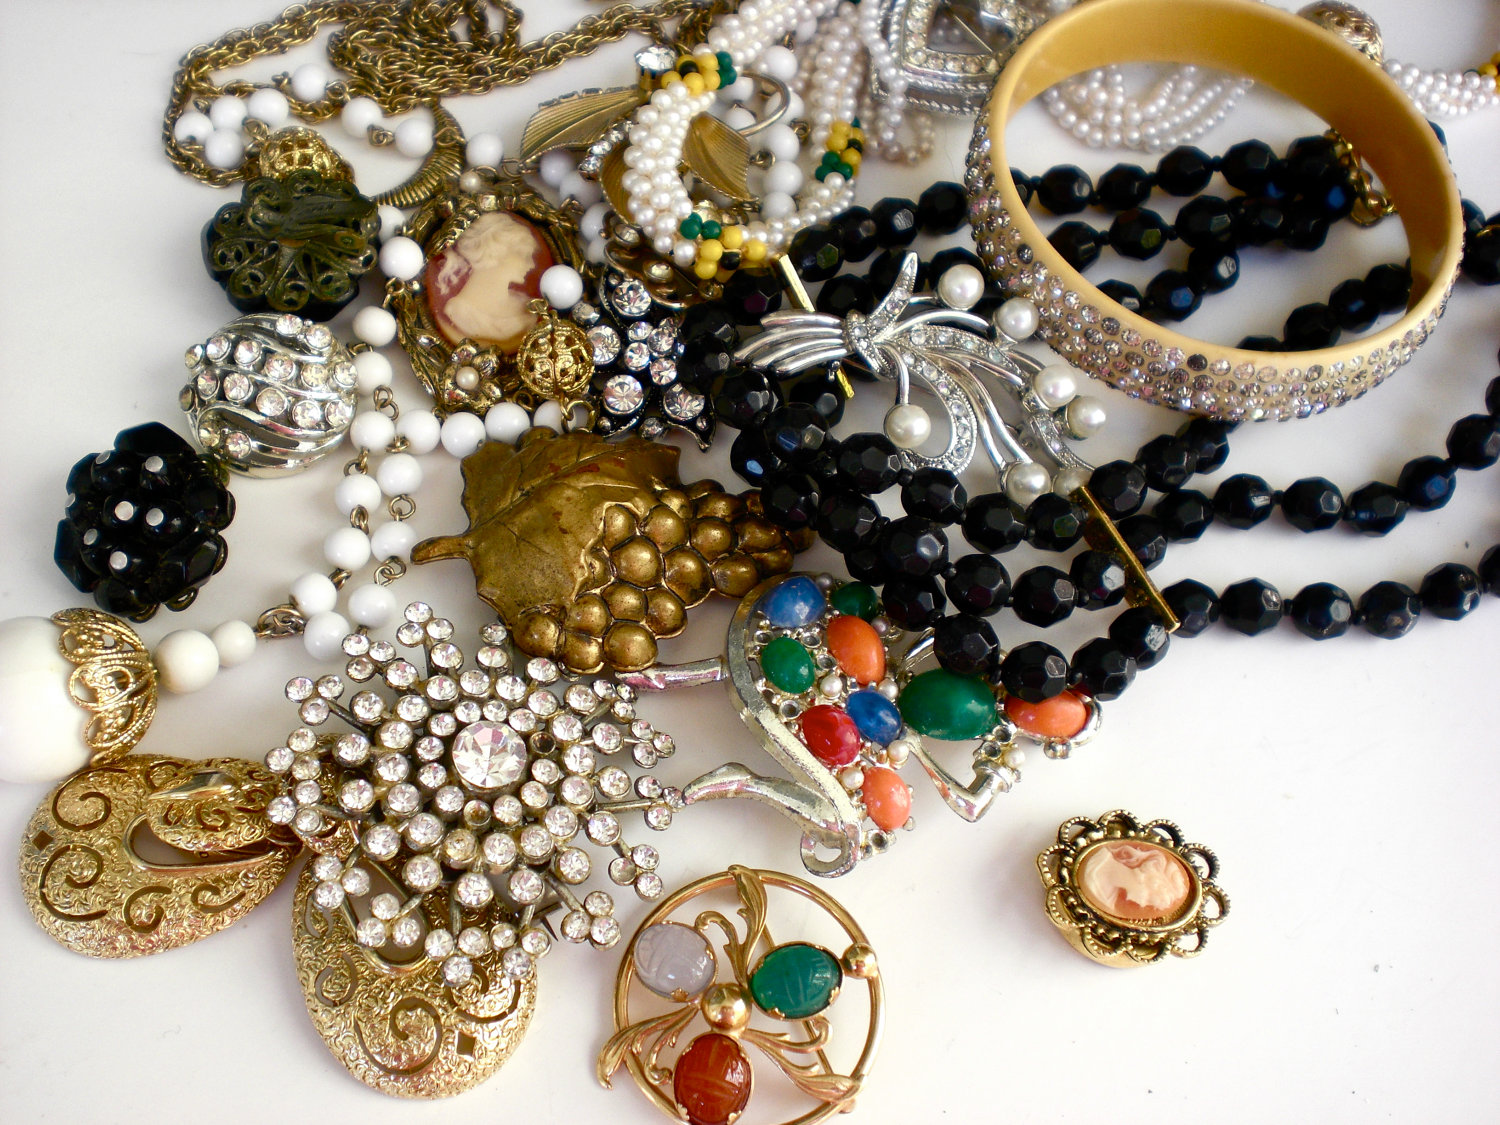 Fine Antique Jewelry Is A Delightful Possession   B2b Business Blog